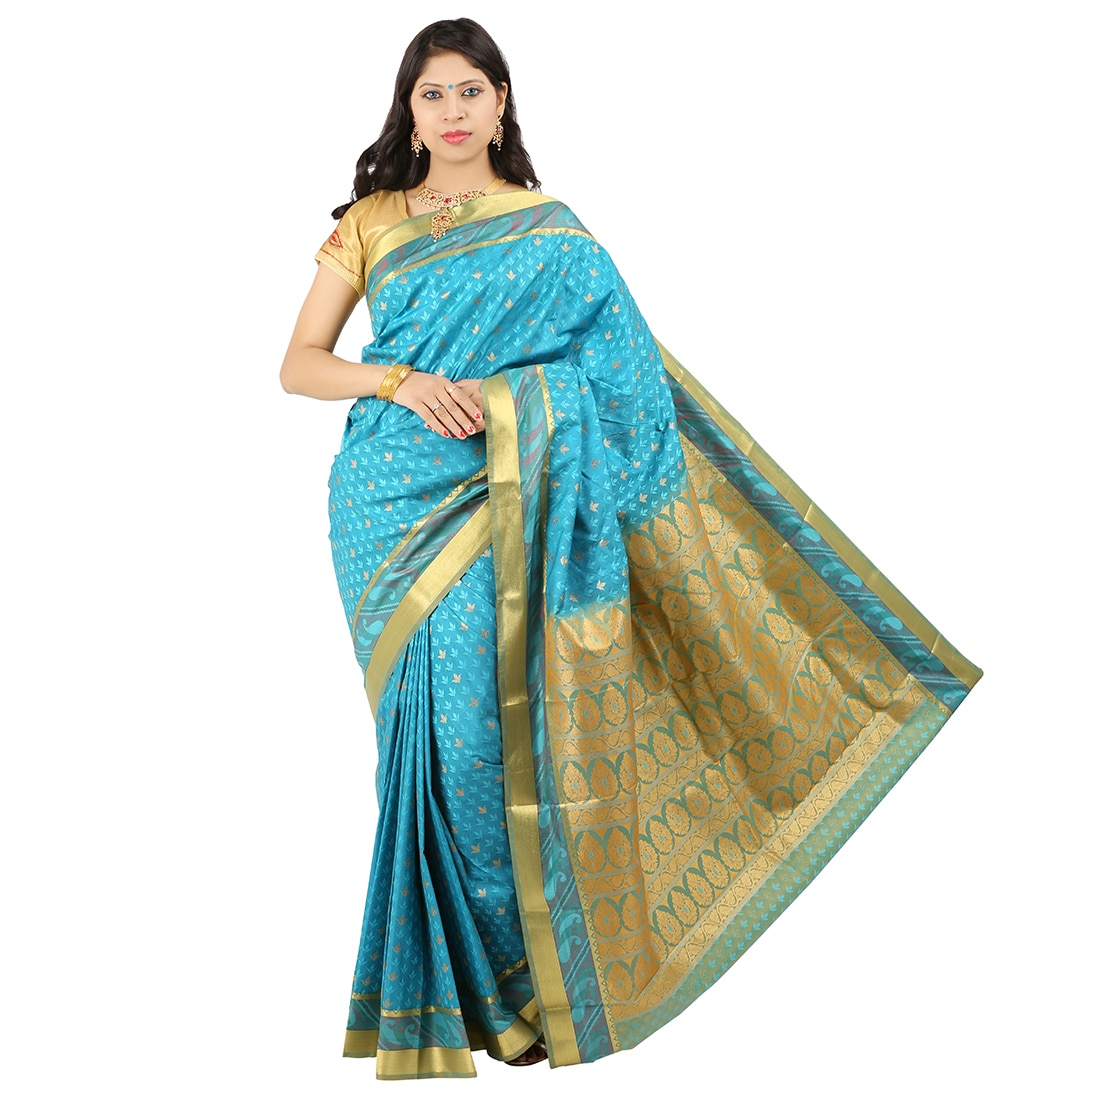 Art Silk Saree Manufacturers,  We are among the pioneers in the industry, making available Embossed Silk Sarees to our valuable customers. The offered sarees are highly regarded in the industry for their distinctive designs and vibrant colors. All these pieces are made available with blouse pieces that have similar detailing as that of the saree. With their enchanting color combinations and optimum finish, these sarees are sought after by a large number of customers.  Features:      Vibrant colors     Made available with blouse pieces     Enchanting color combinations